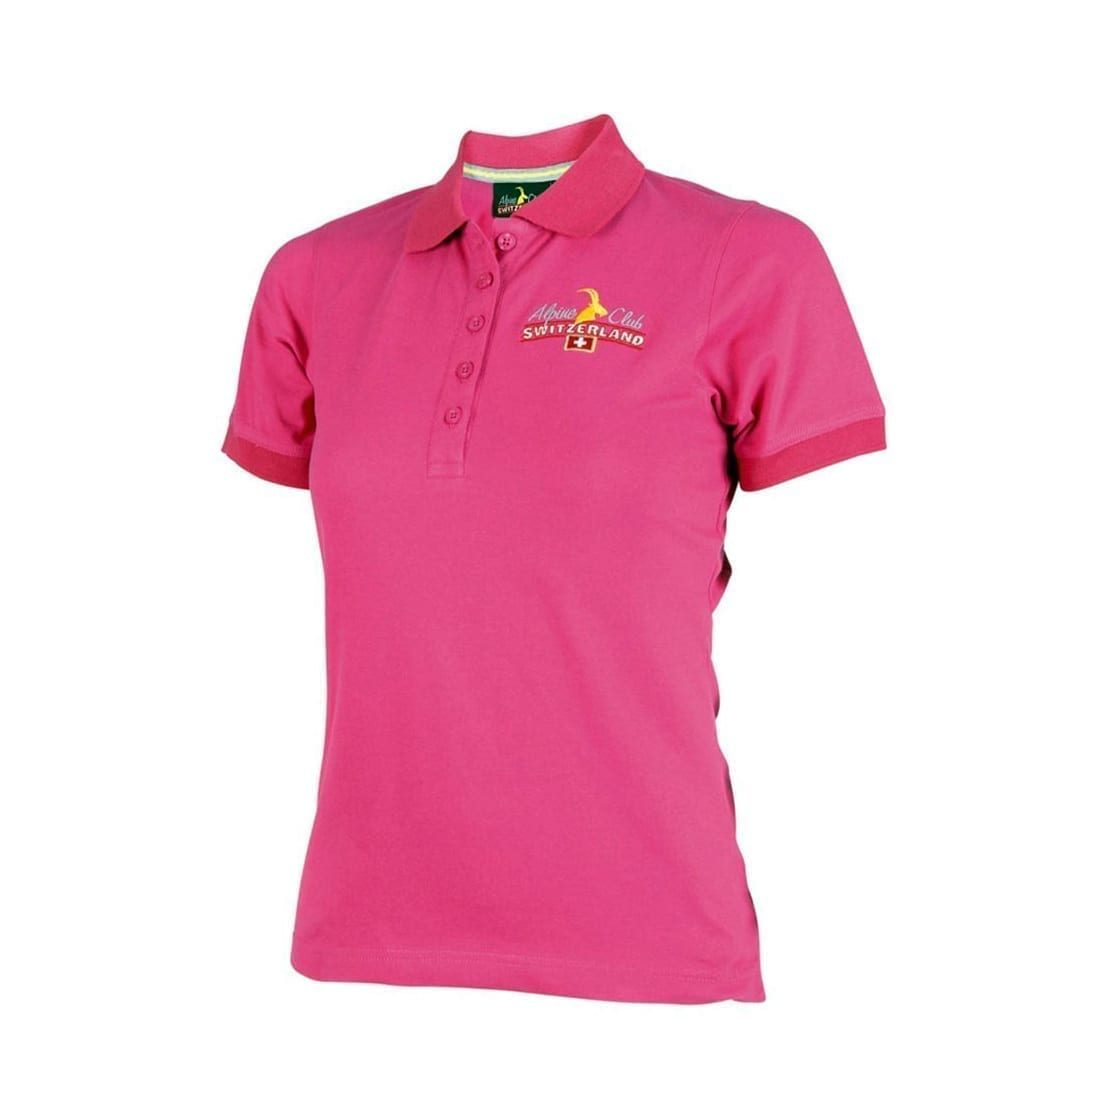 Polo Shirt For Women 100 Cotton Regular Fit Swiss Made Direct